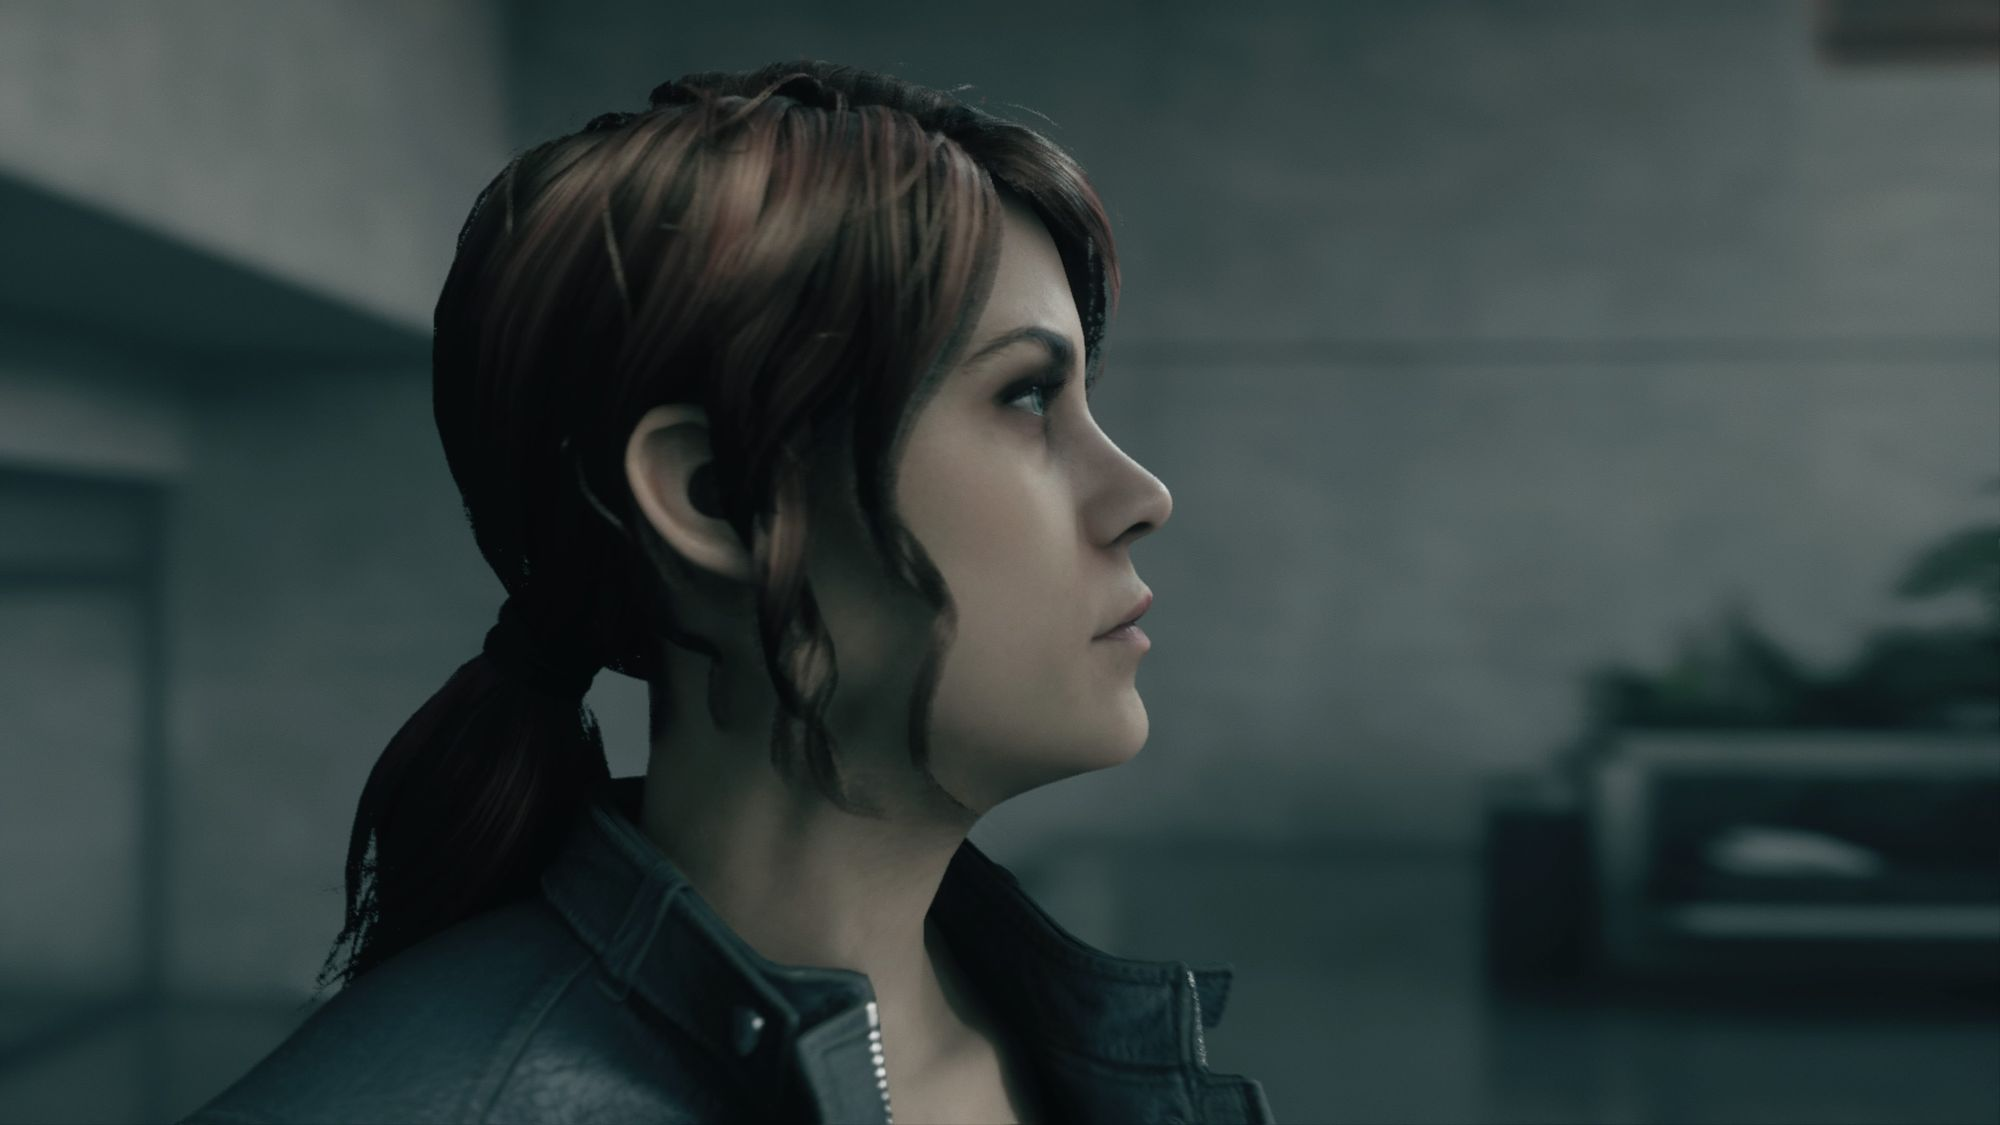 The protagonist Jesse Faden, her side profile captured in the image.